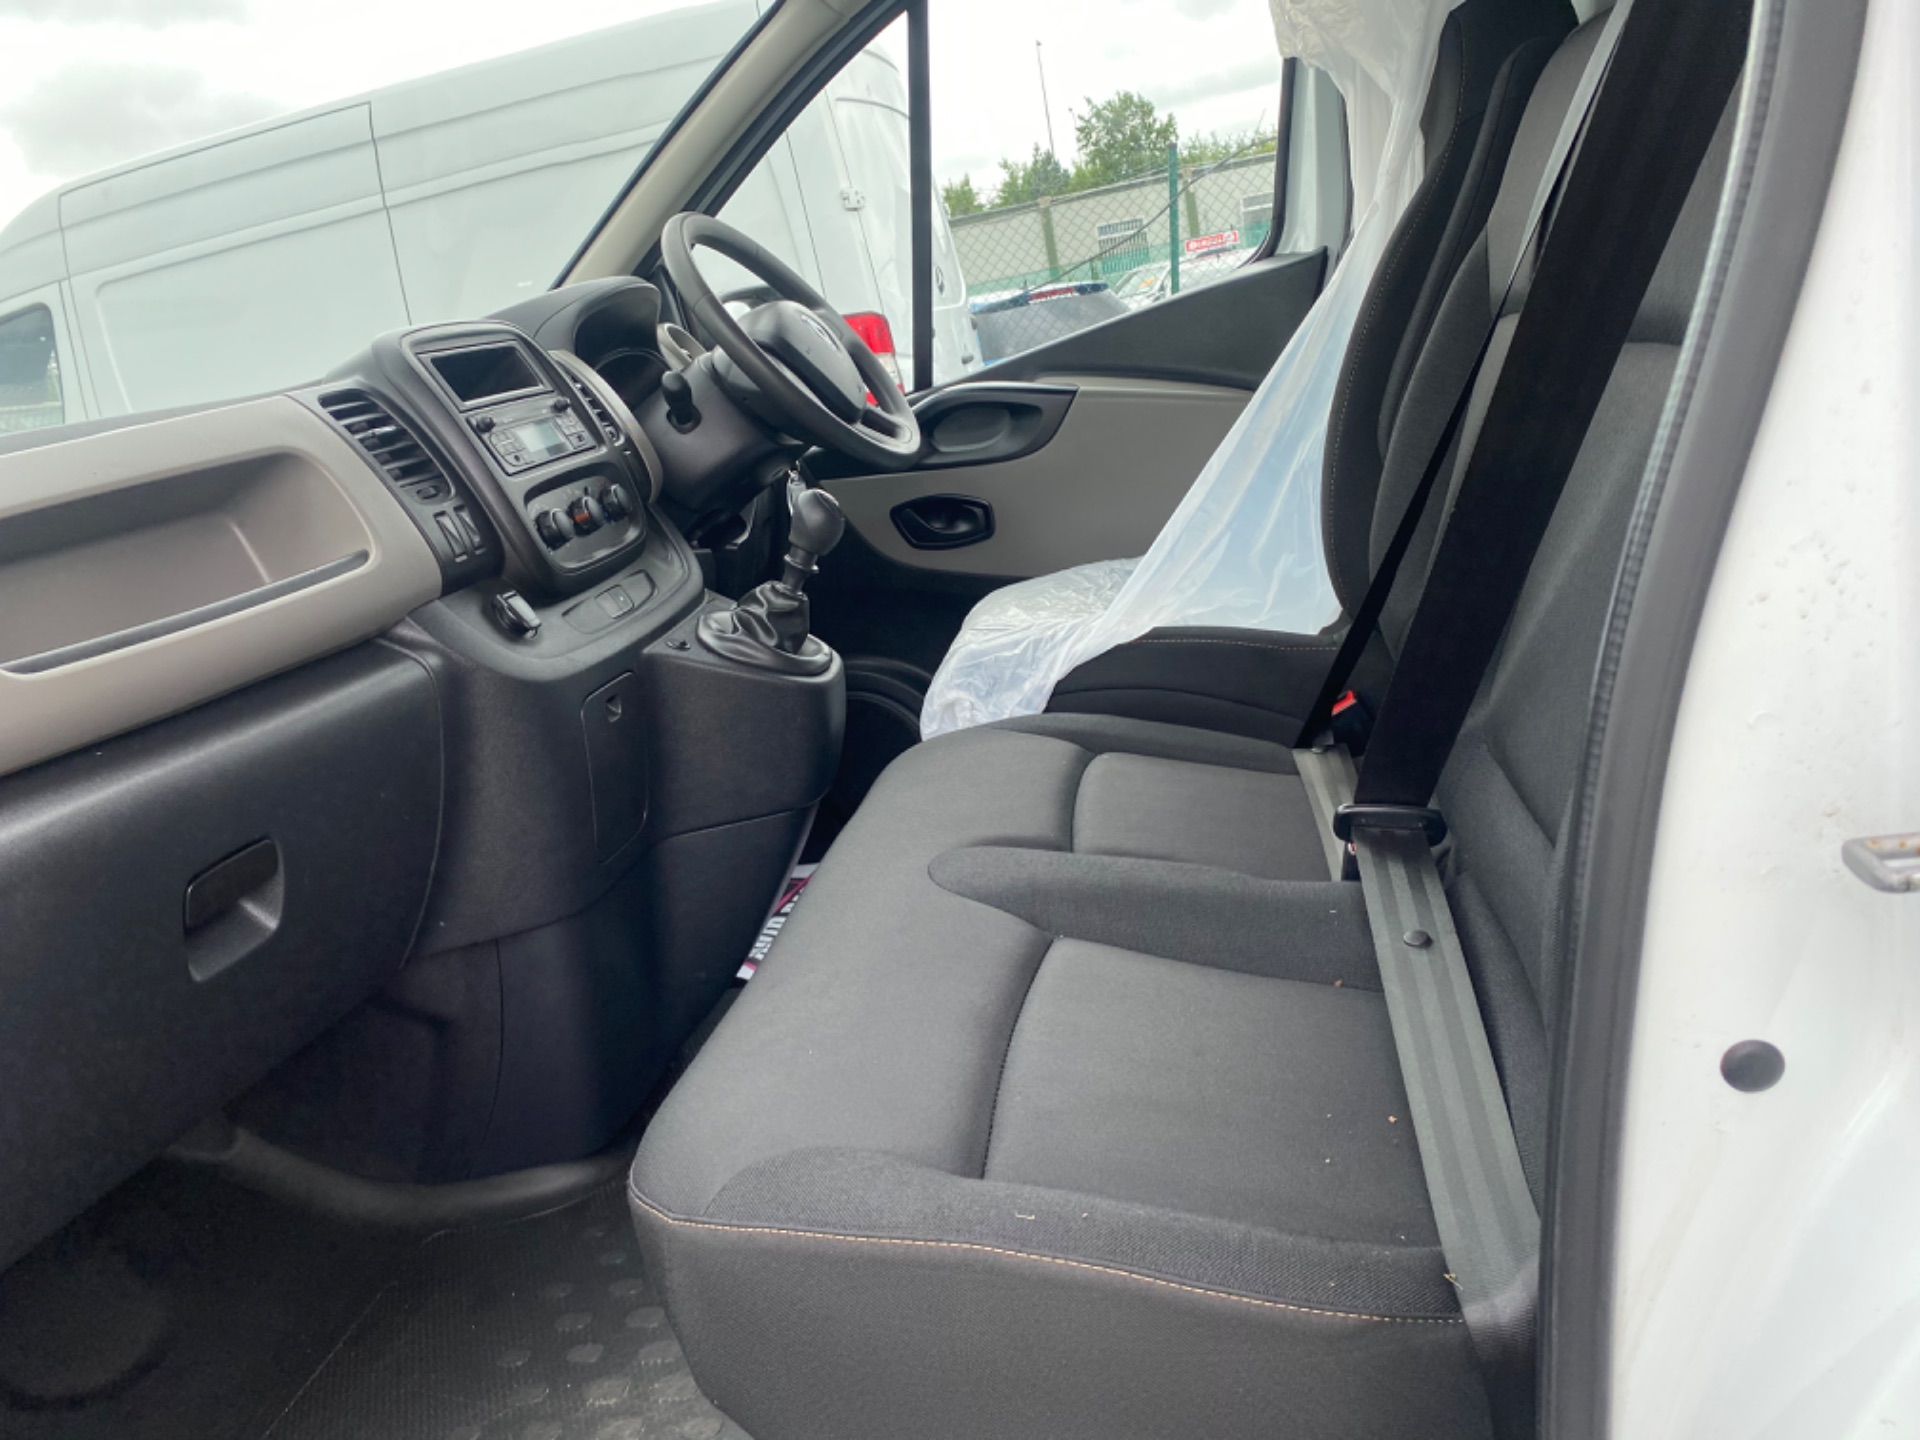 2017 Renault Trafic LL29 DCI 120 Business 3DR (172D22875) Image 12